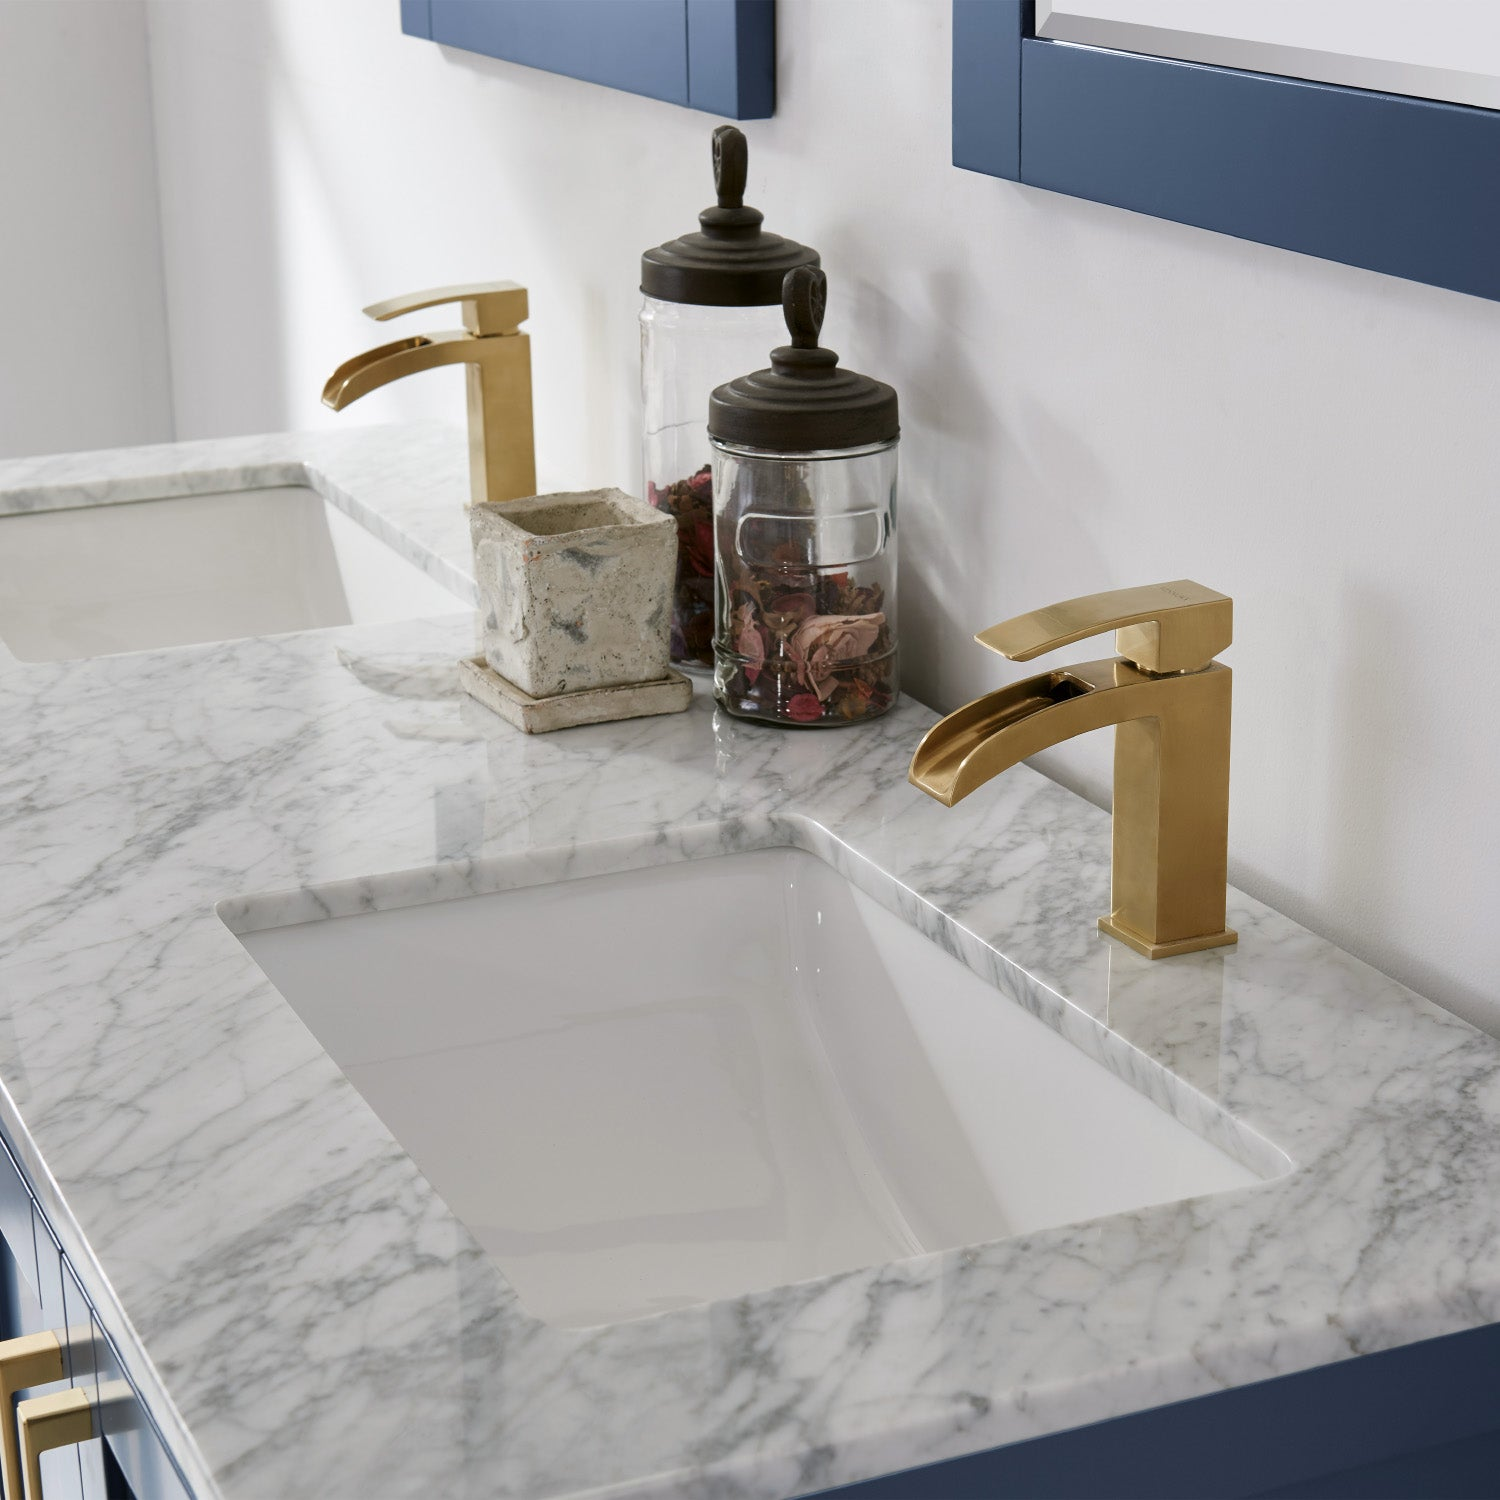 "Remi 60"" Double Bathroom Vanity Set in Royal Blue and Carrara White Marble Countertop with Mirror"